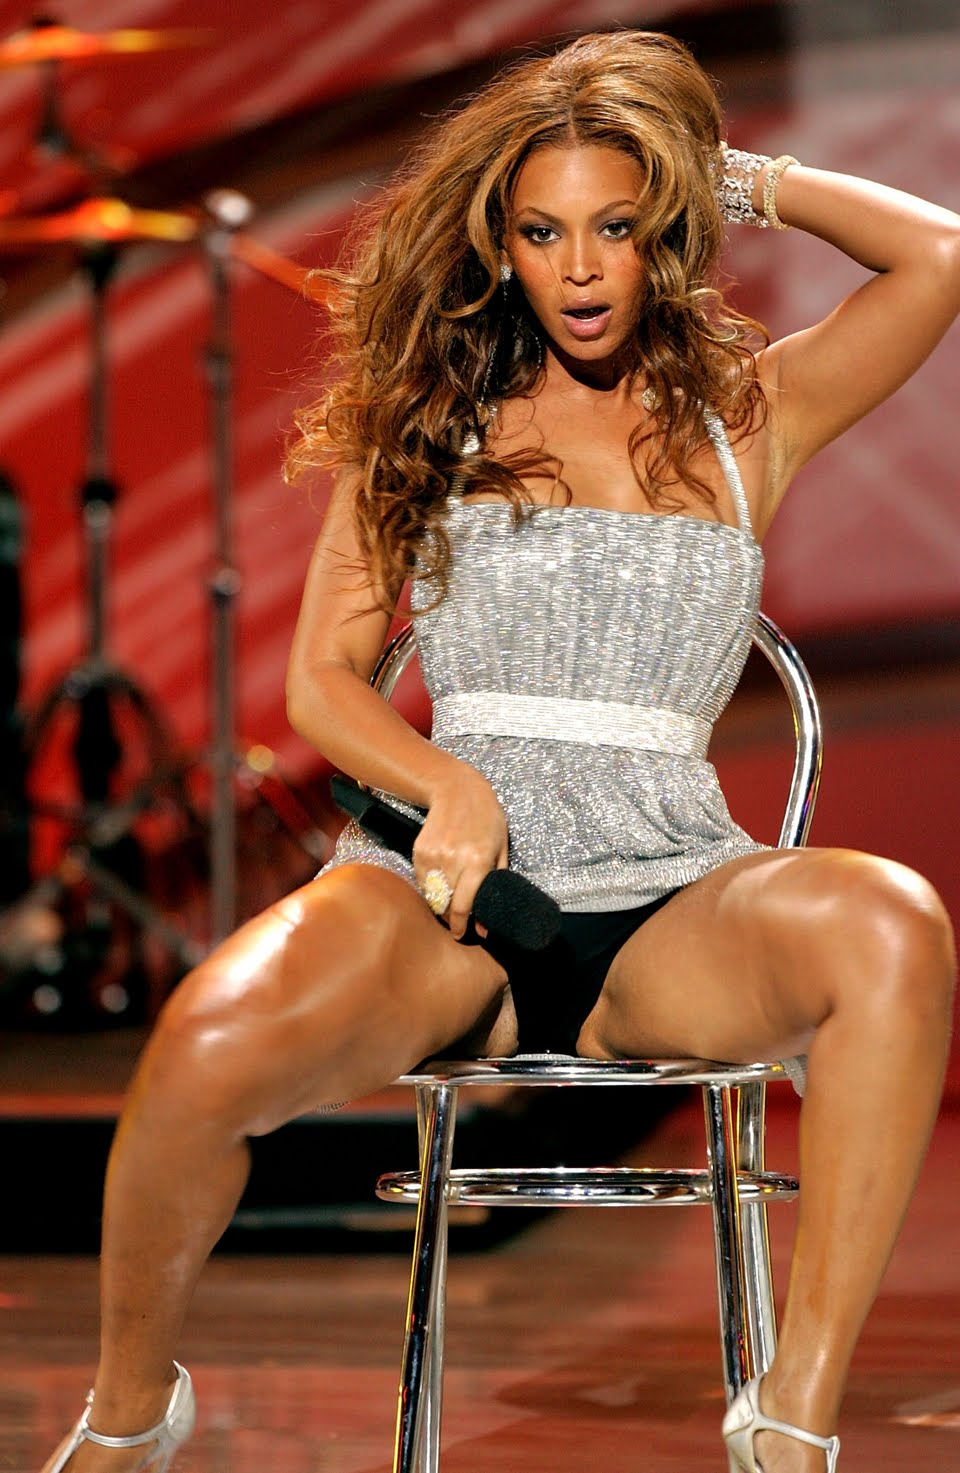 beyonce-pron-images-football